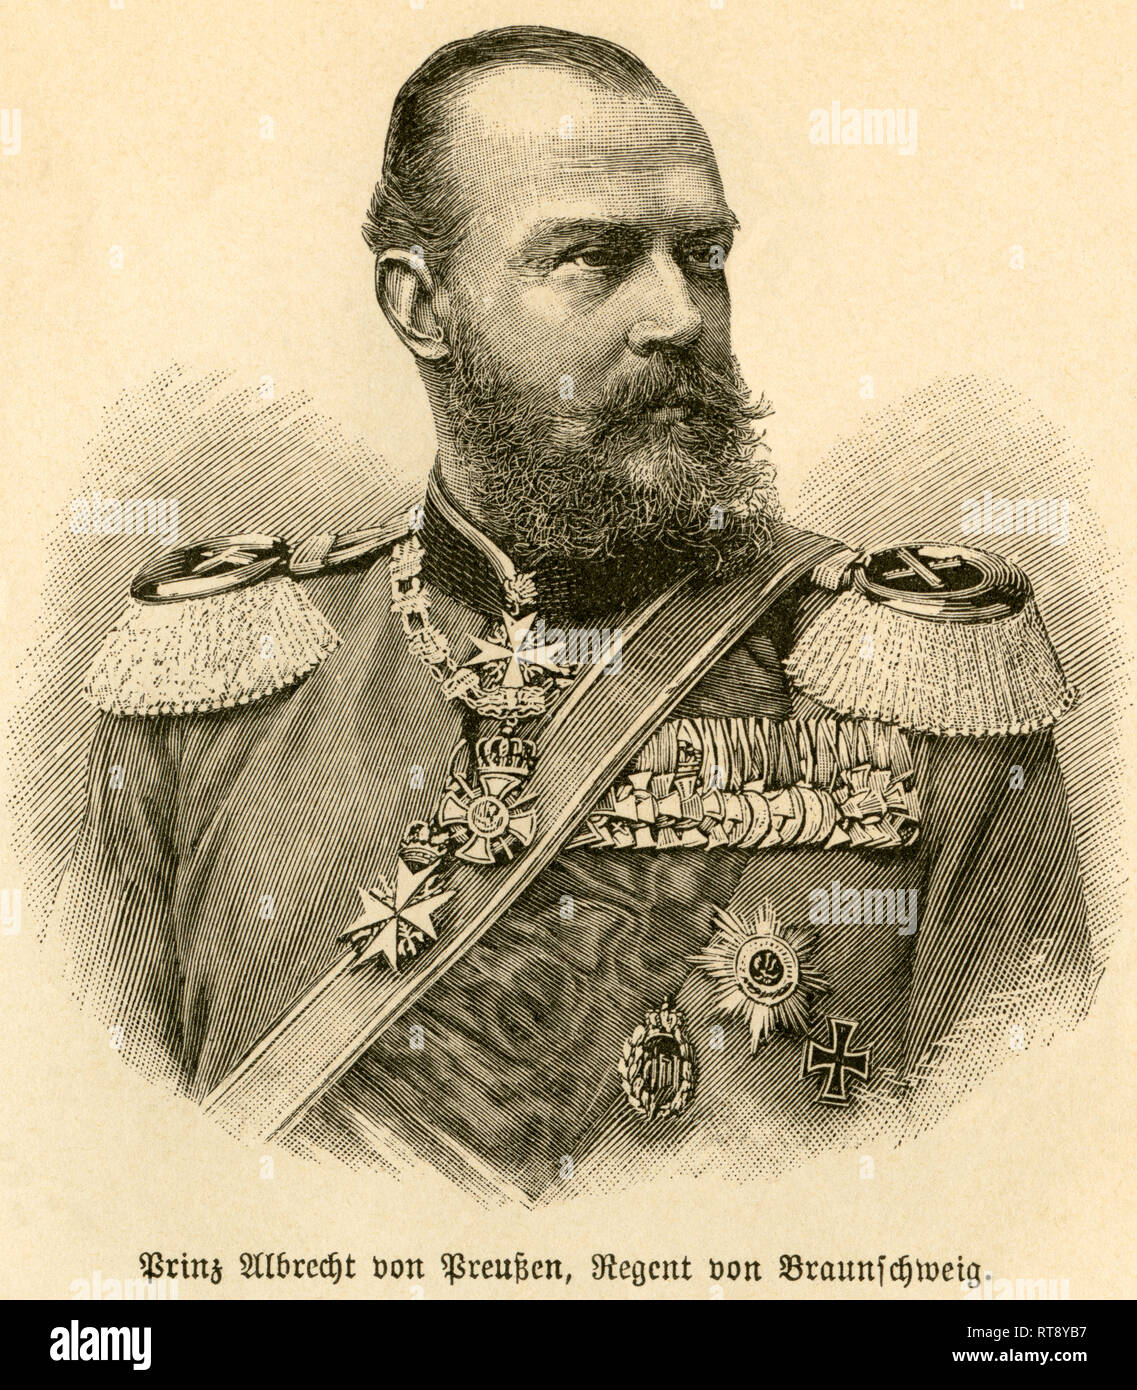 Prince Albert of Prussia, regent of the Duchy of Brunswick, portrait from: 'Deutschlands Heerführer' (German military leader), 1640-1894, portrayed by Sprößer, publishing house Ferdinand Hirt and son, Leipzig, 1895., Additional-Rights-Clearance-Info-Not-Available - Stock Image